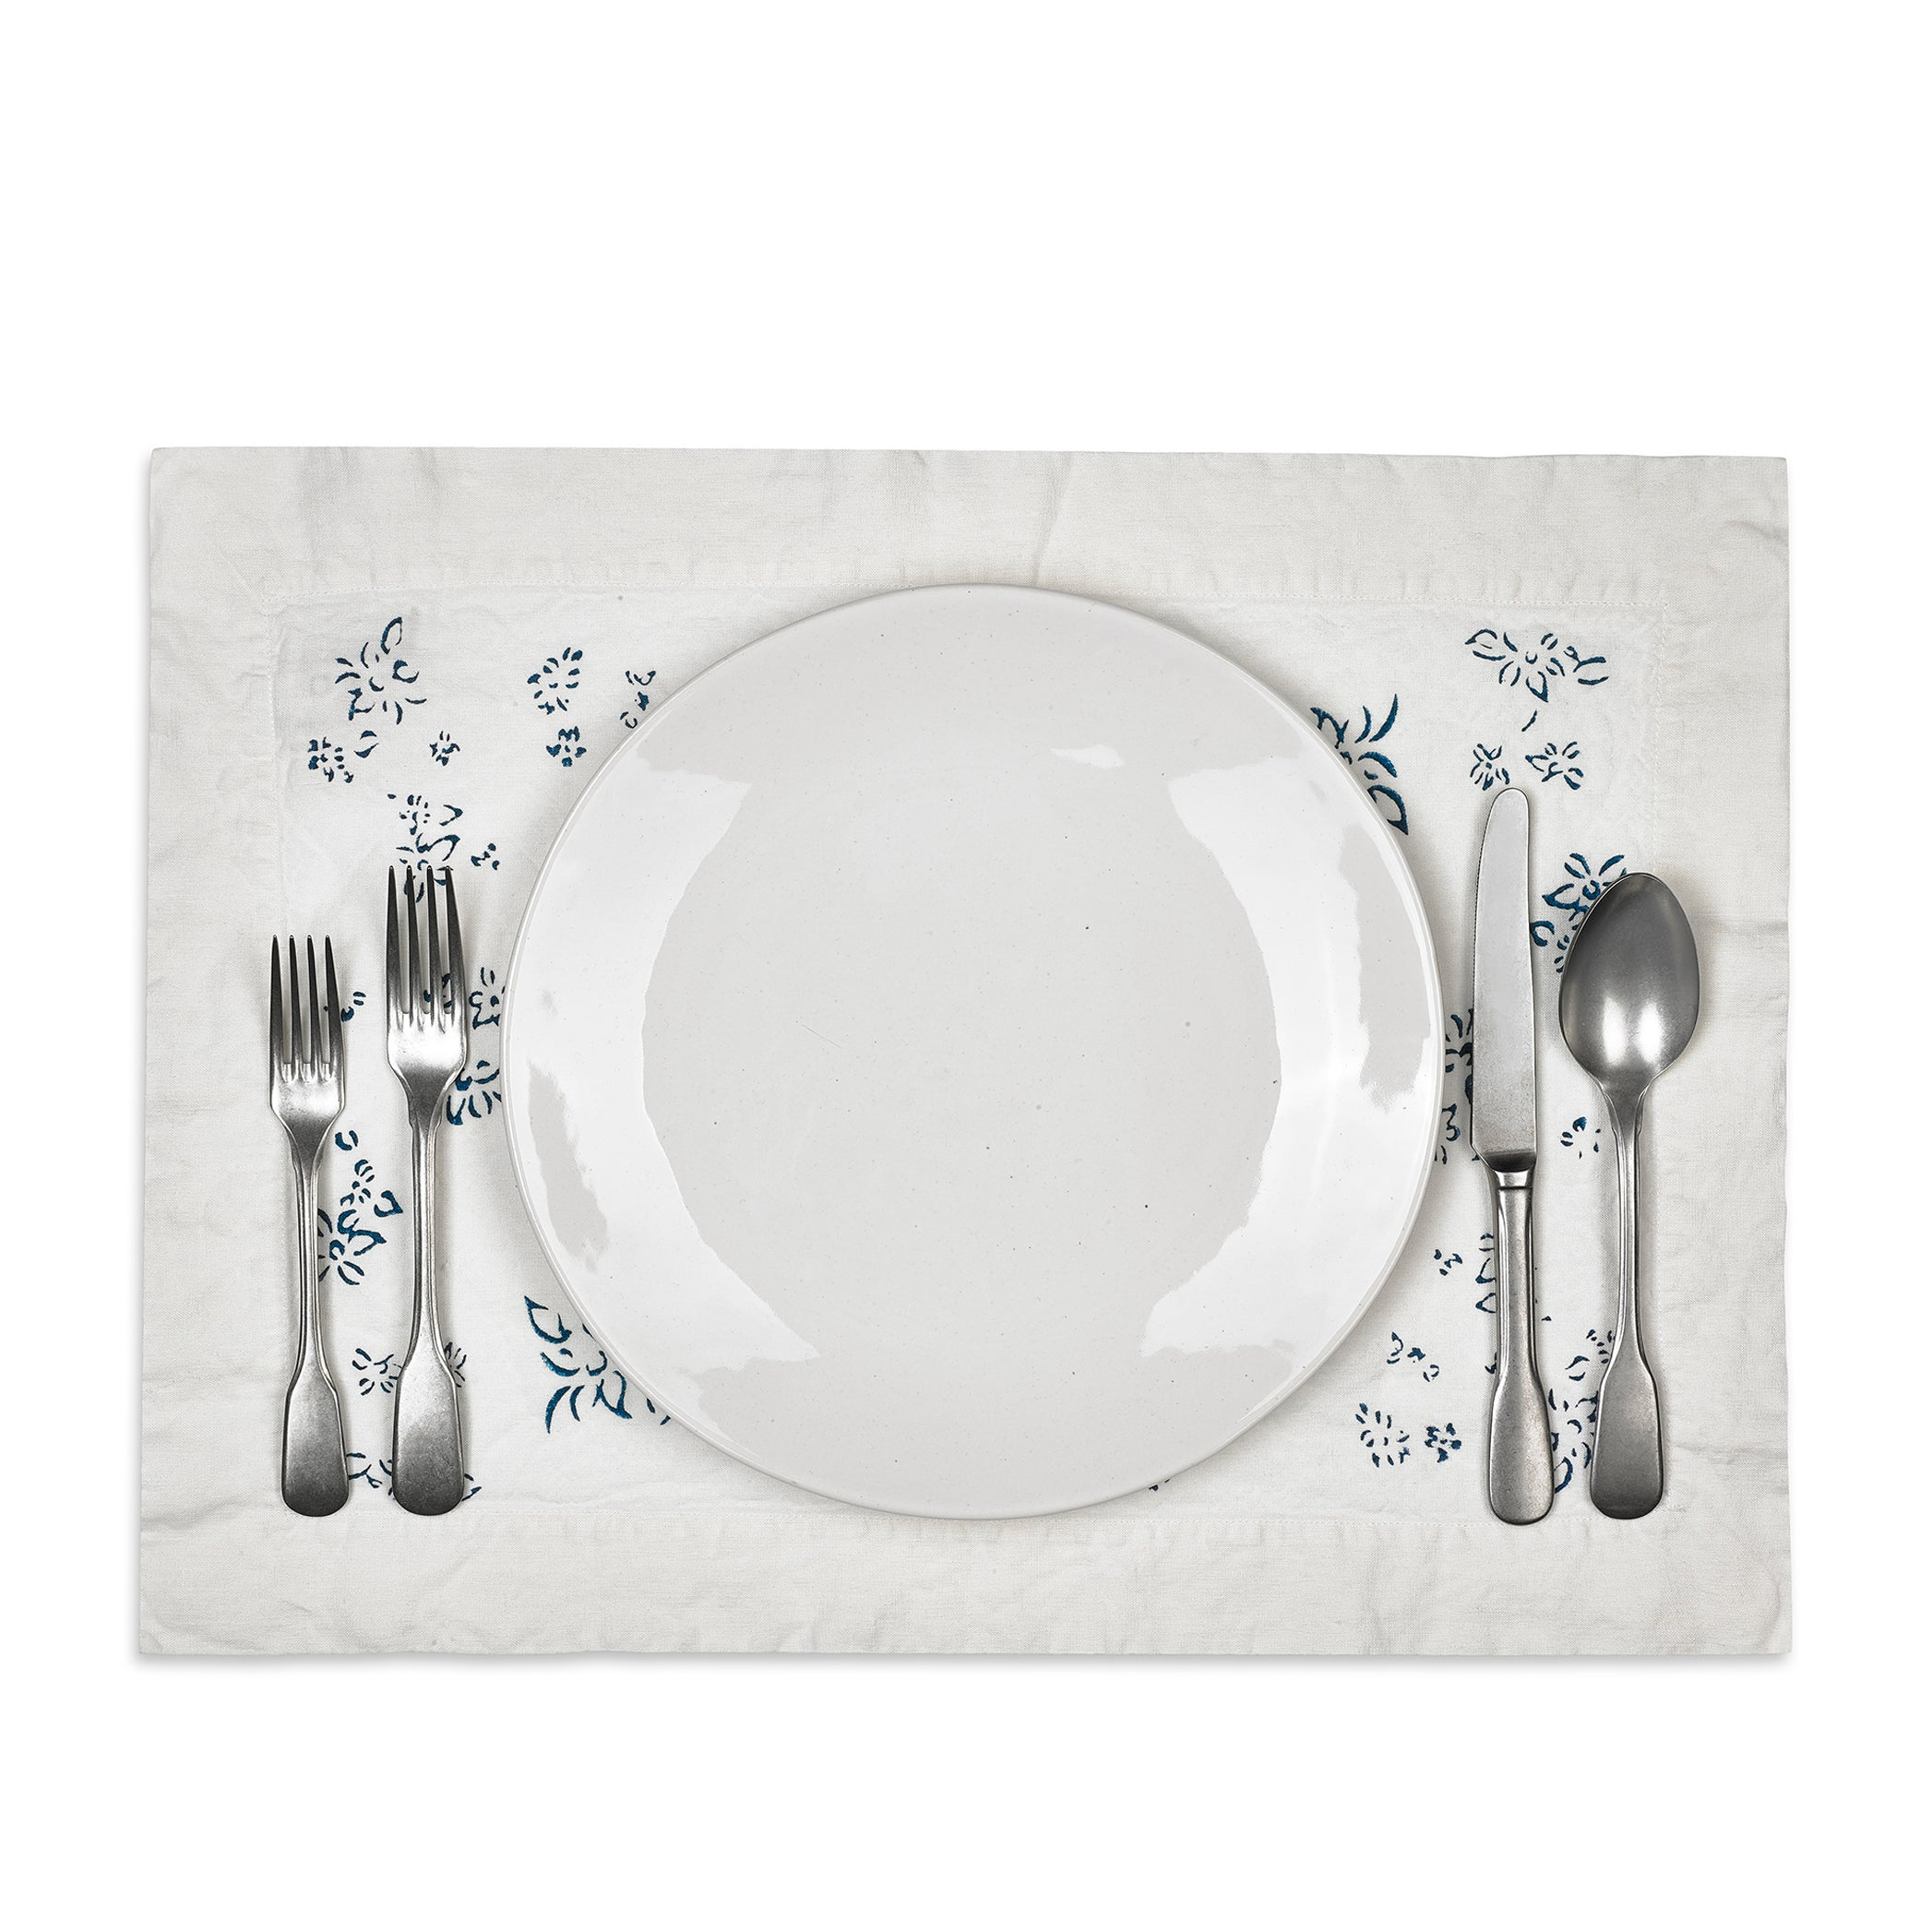 Bernadette's Hand Stamped Falling Flower Linen Placemat in Midnight Blue